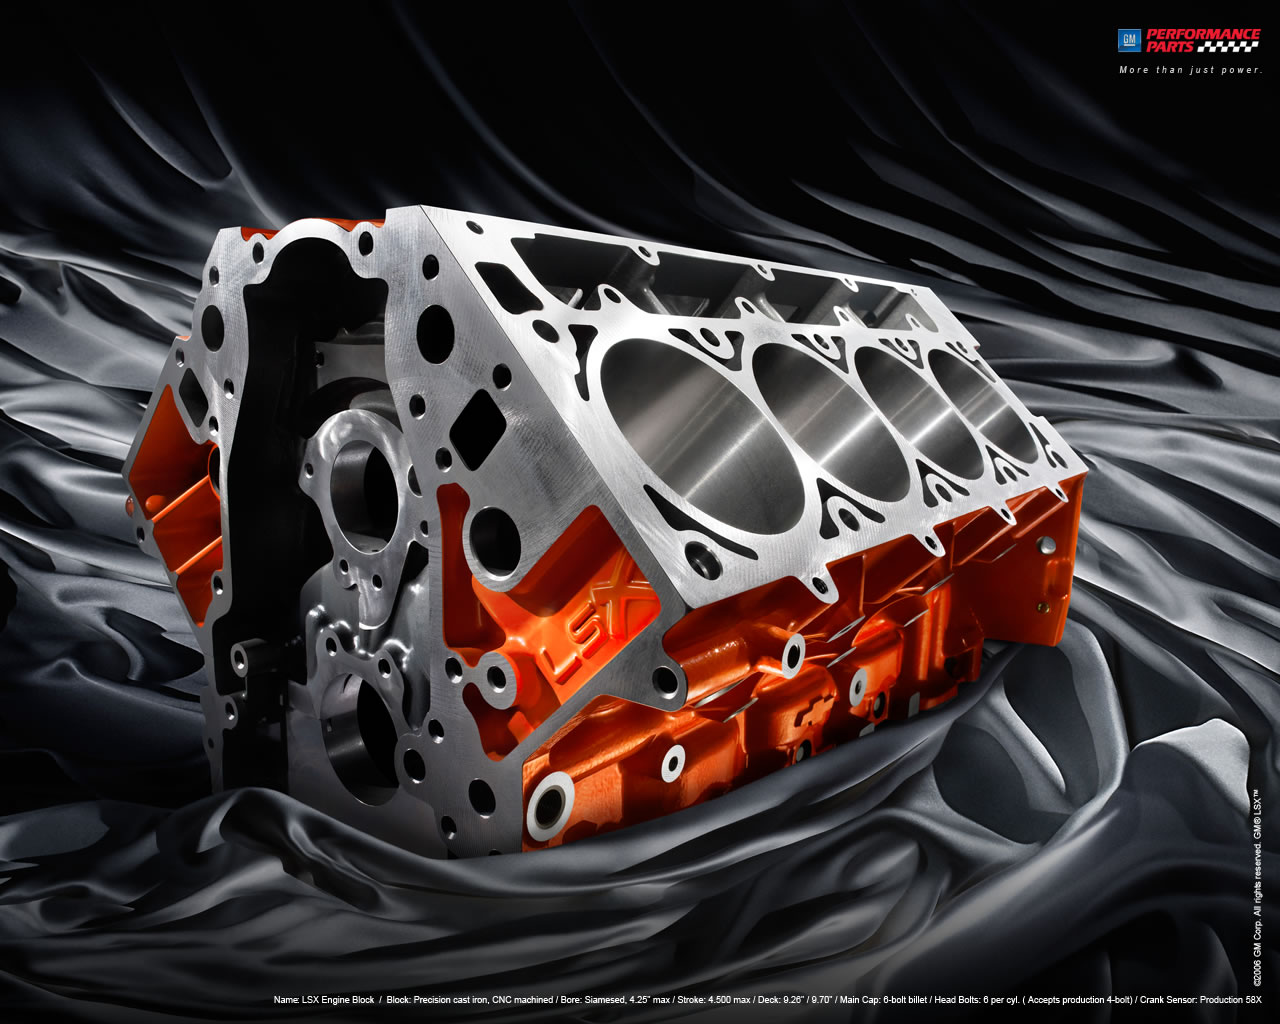 all new pix1: V8 Wallpapers Engines